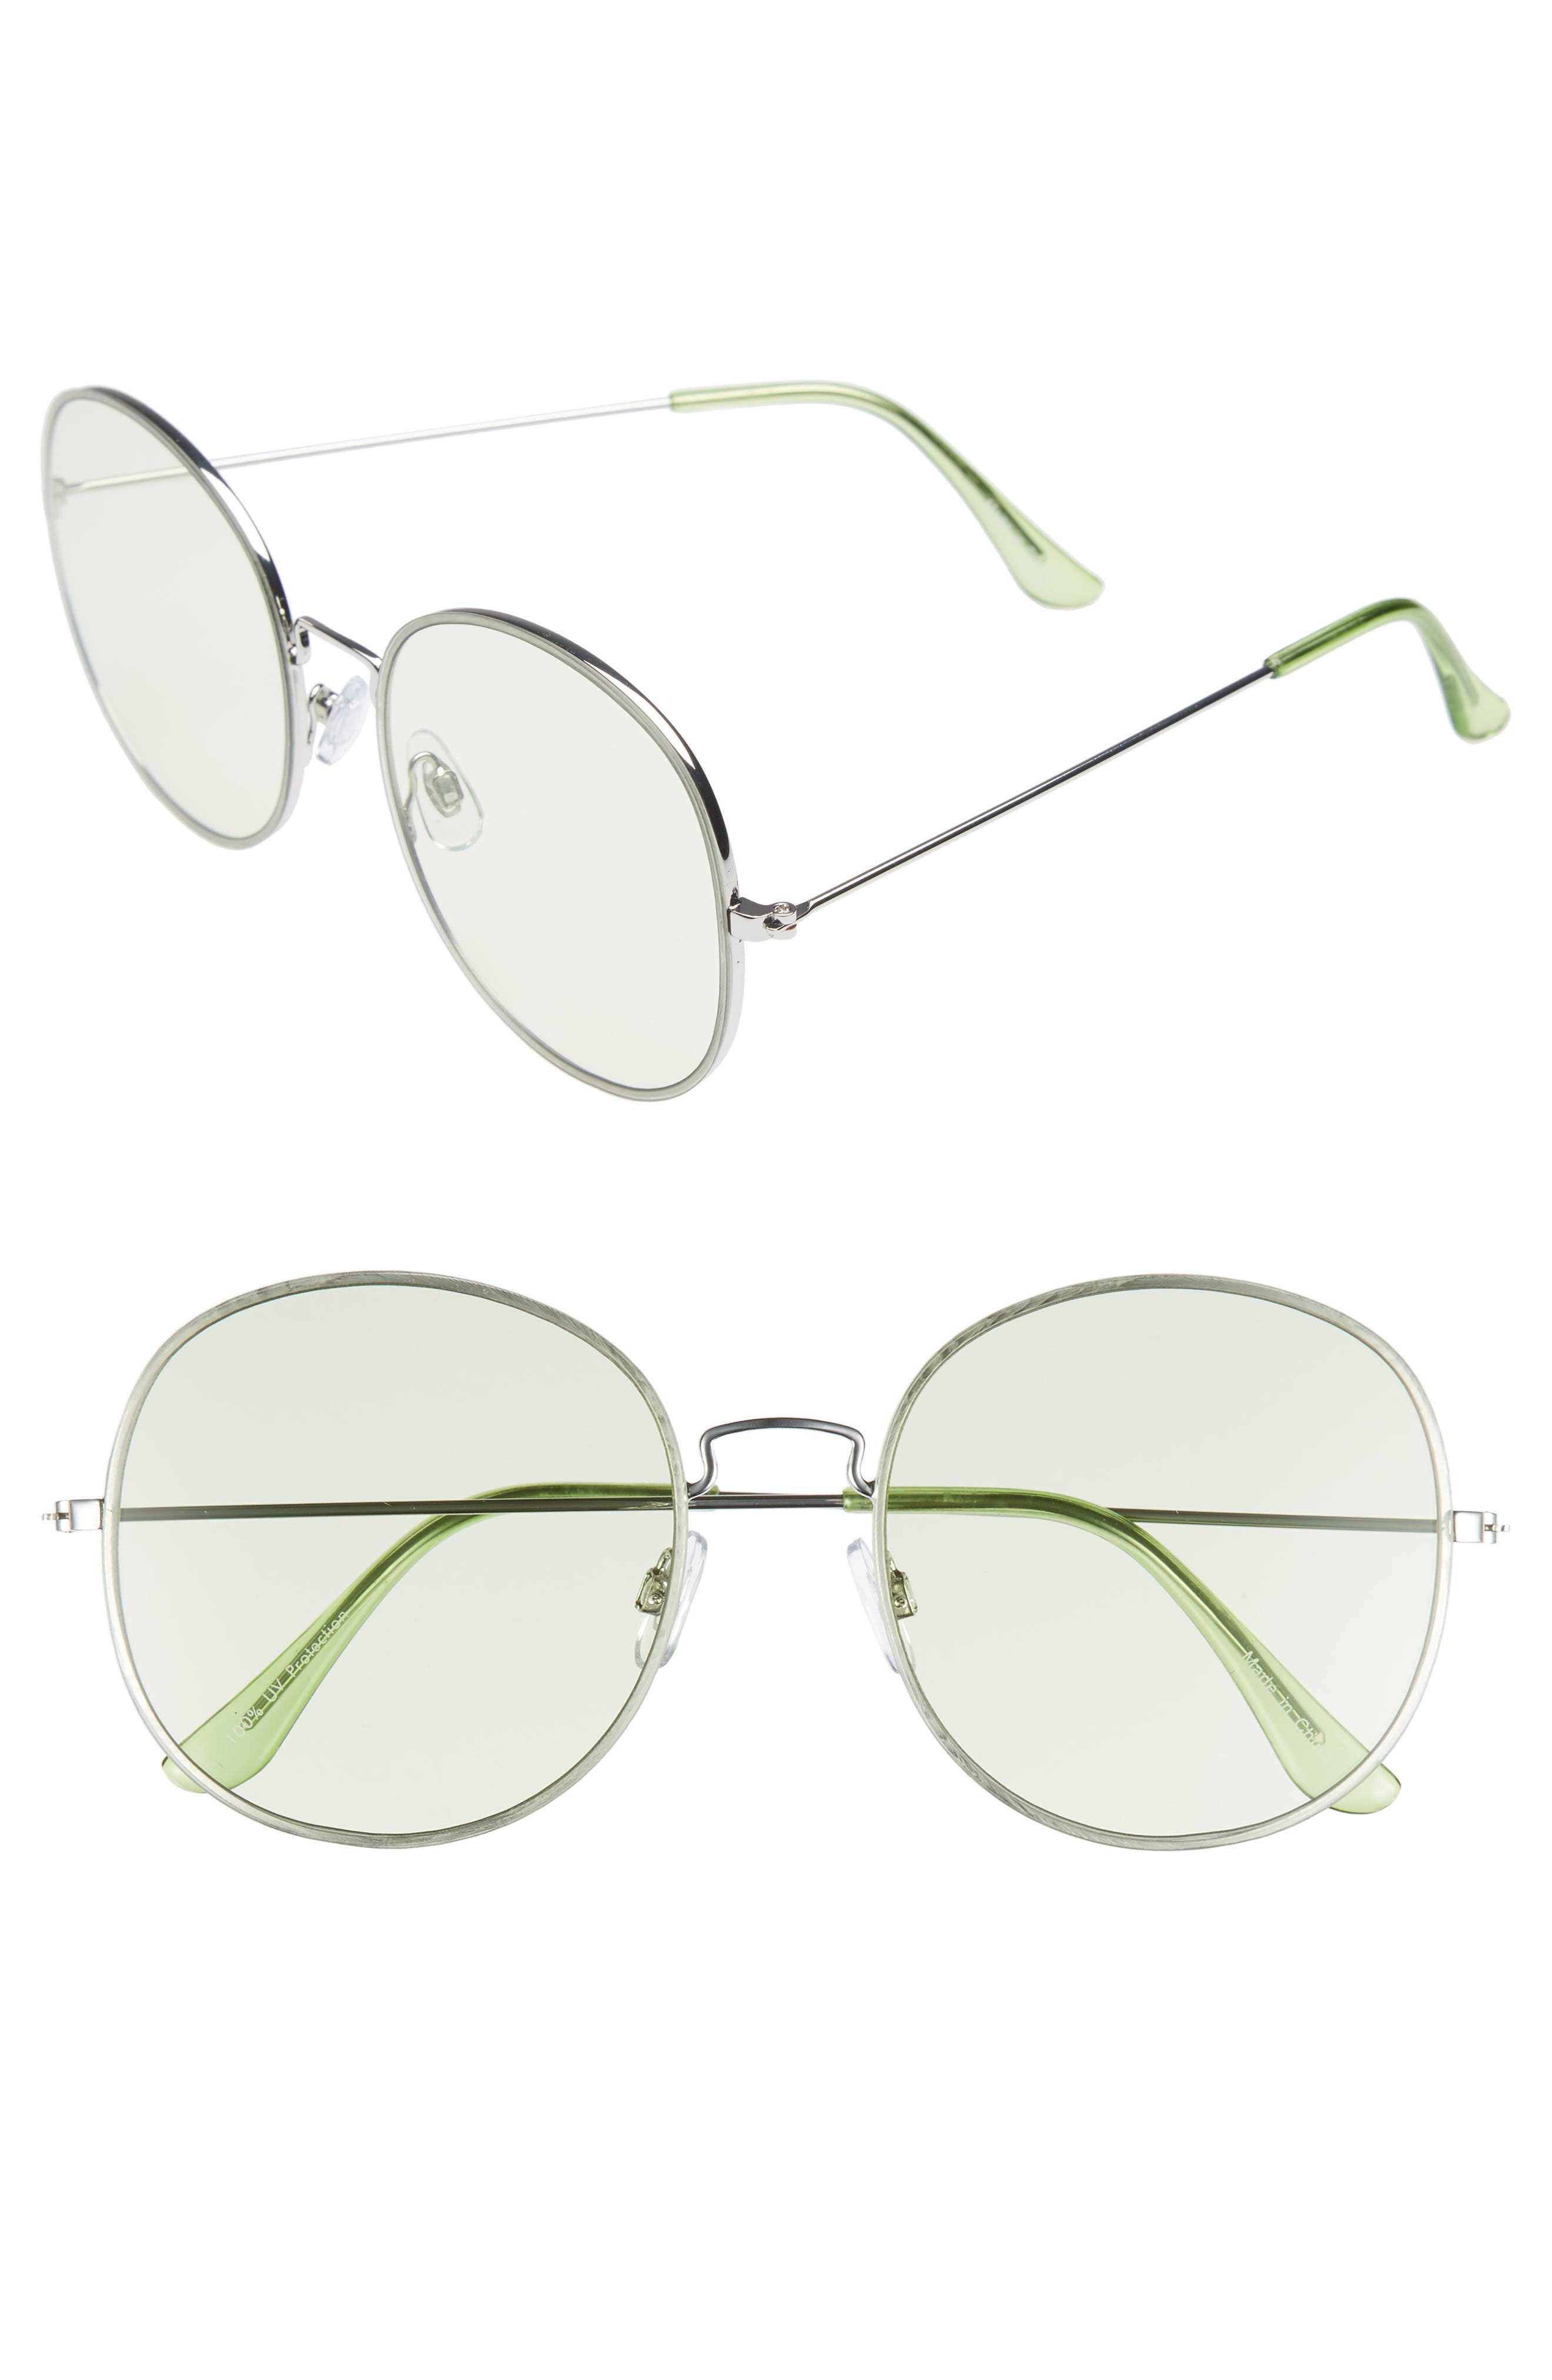 57mm Flat Round Sunglasses,                         Main,                         color, Green